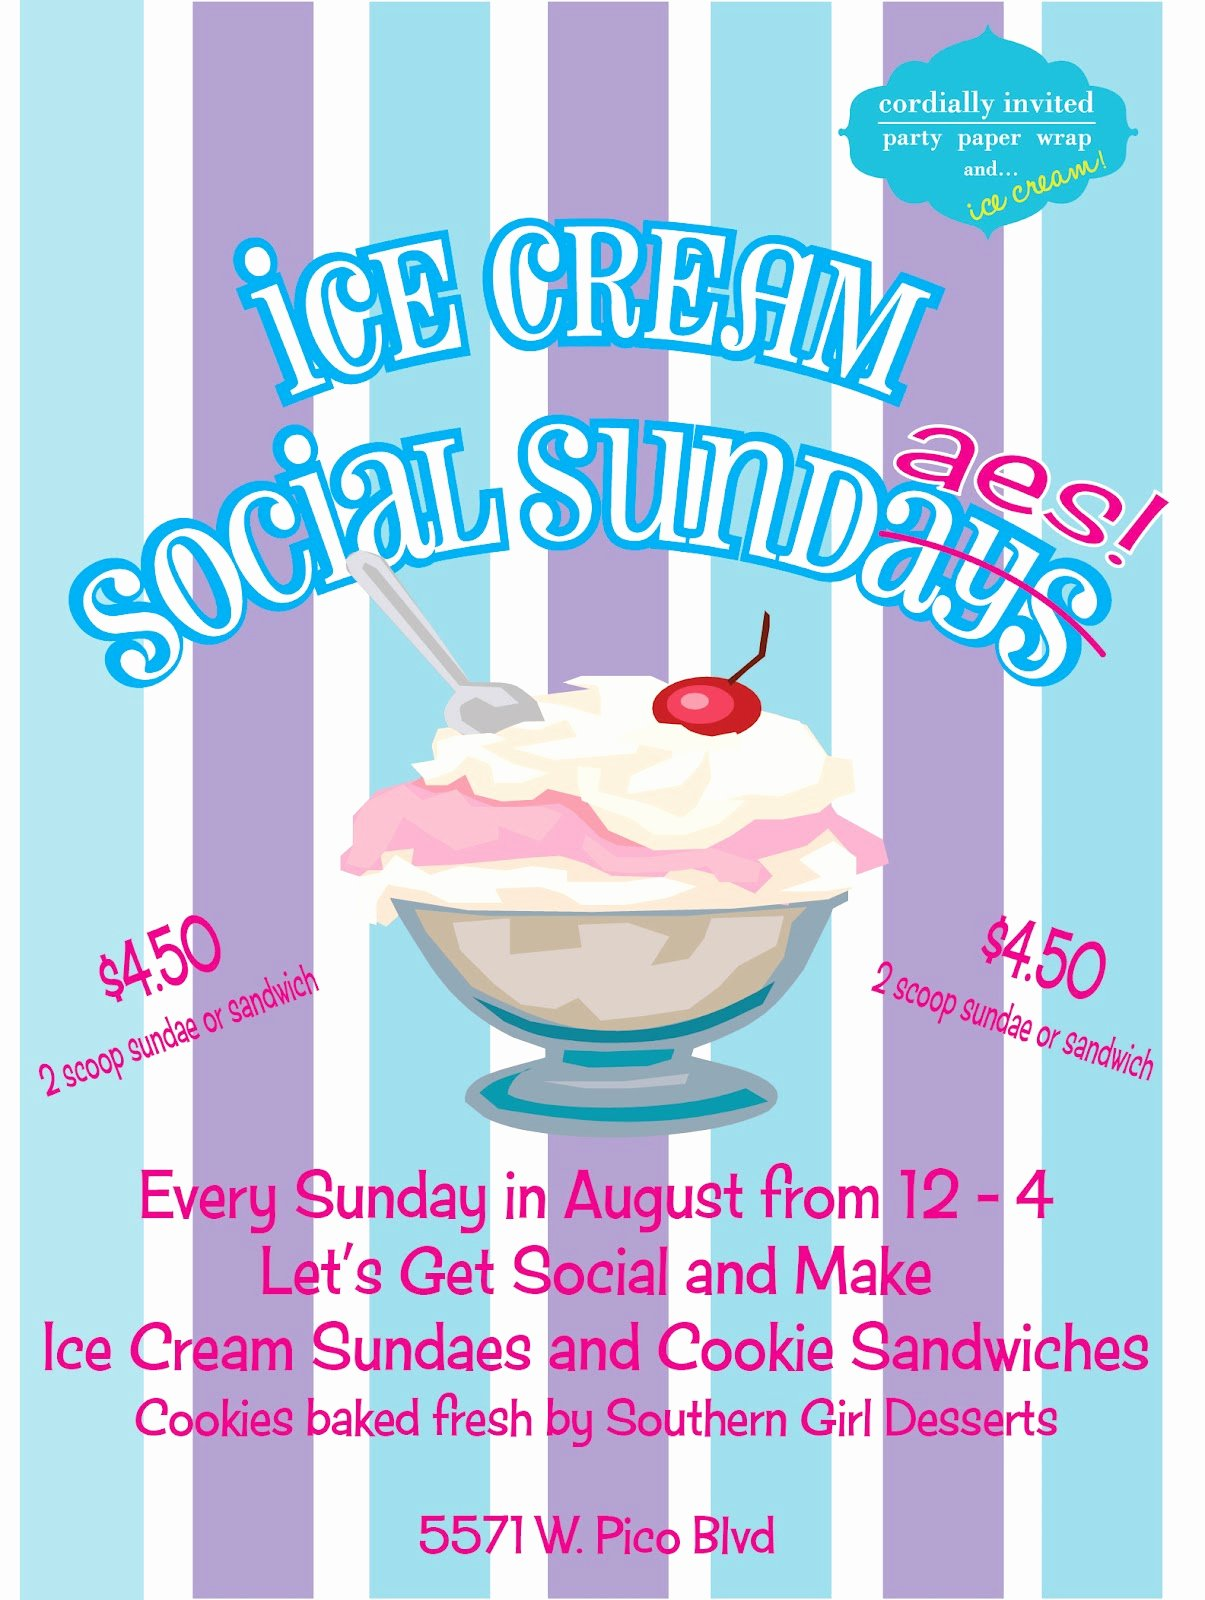 Ice Cream social Flyer Template Free Elegant Party Paper & Wrap with Cordially Invited August 2012